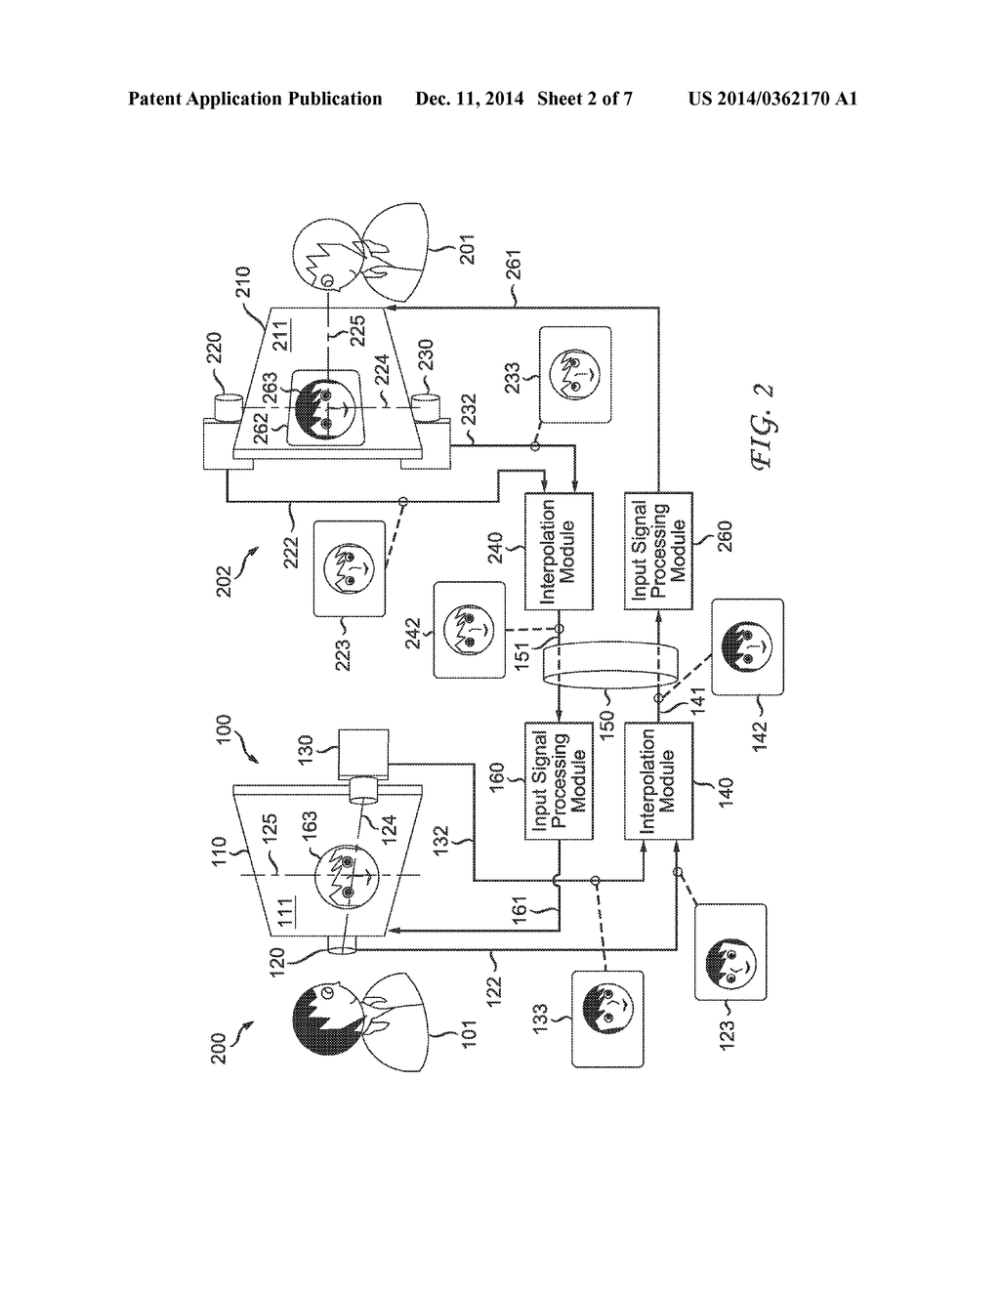 medium resolution of video conference system and method for maintaining participant eye contact diagram schematic and image 03